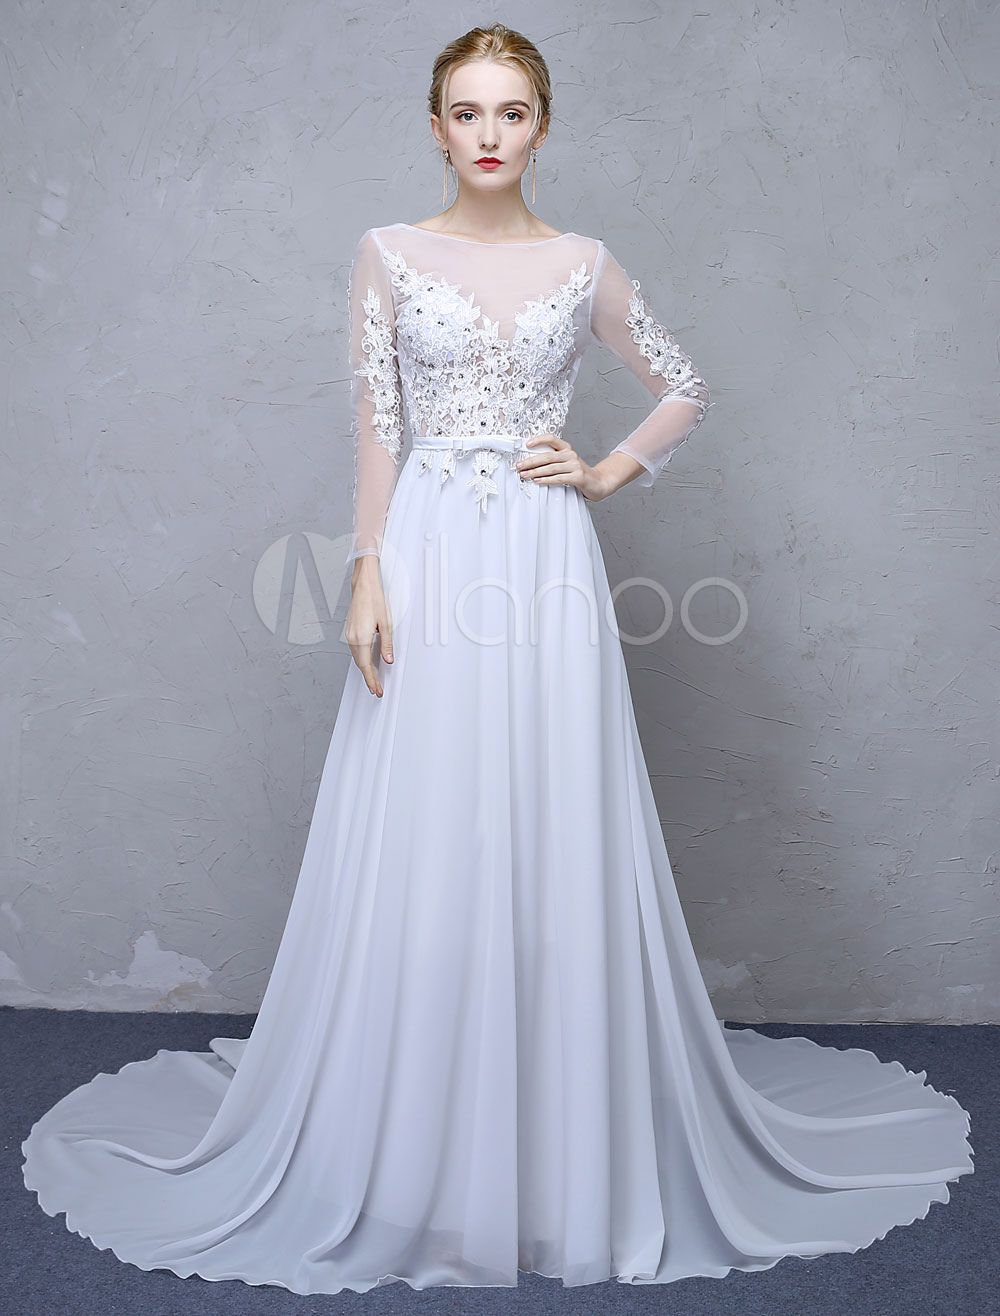 Wedding dress with long train  Summer Wedding Dresses  White Lace Long Sleeve Backless Beaded